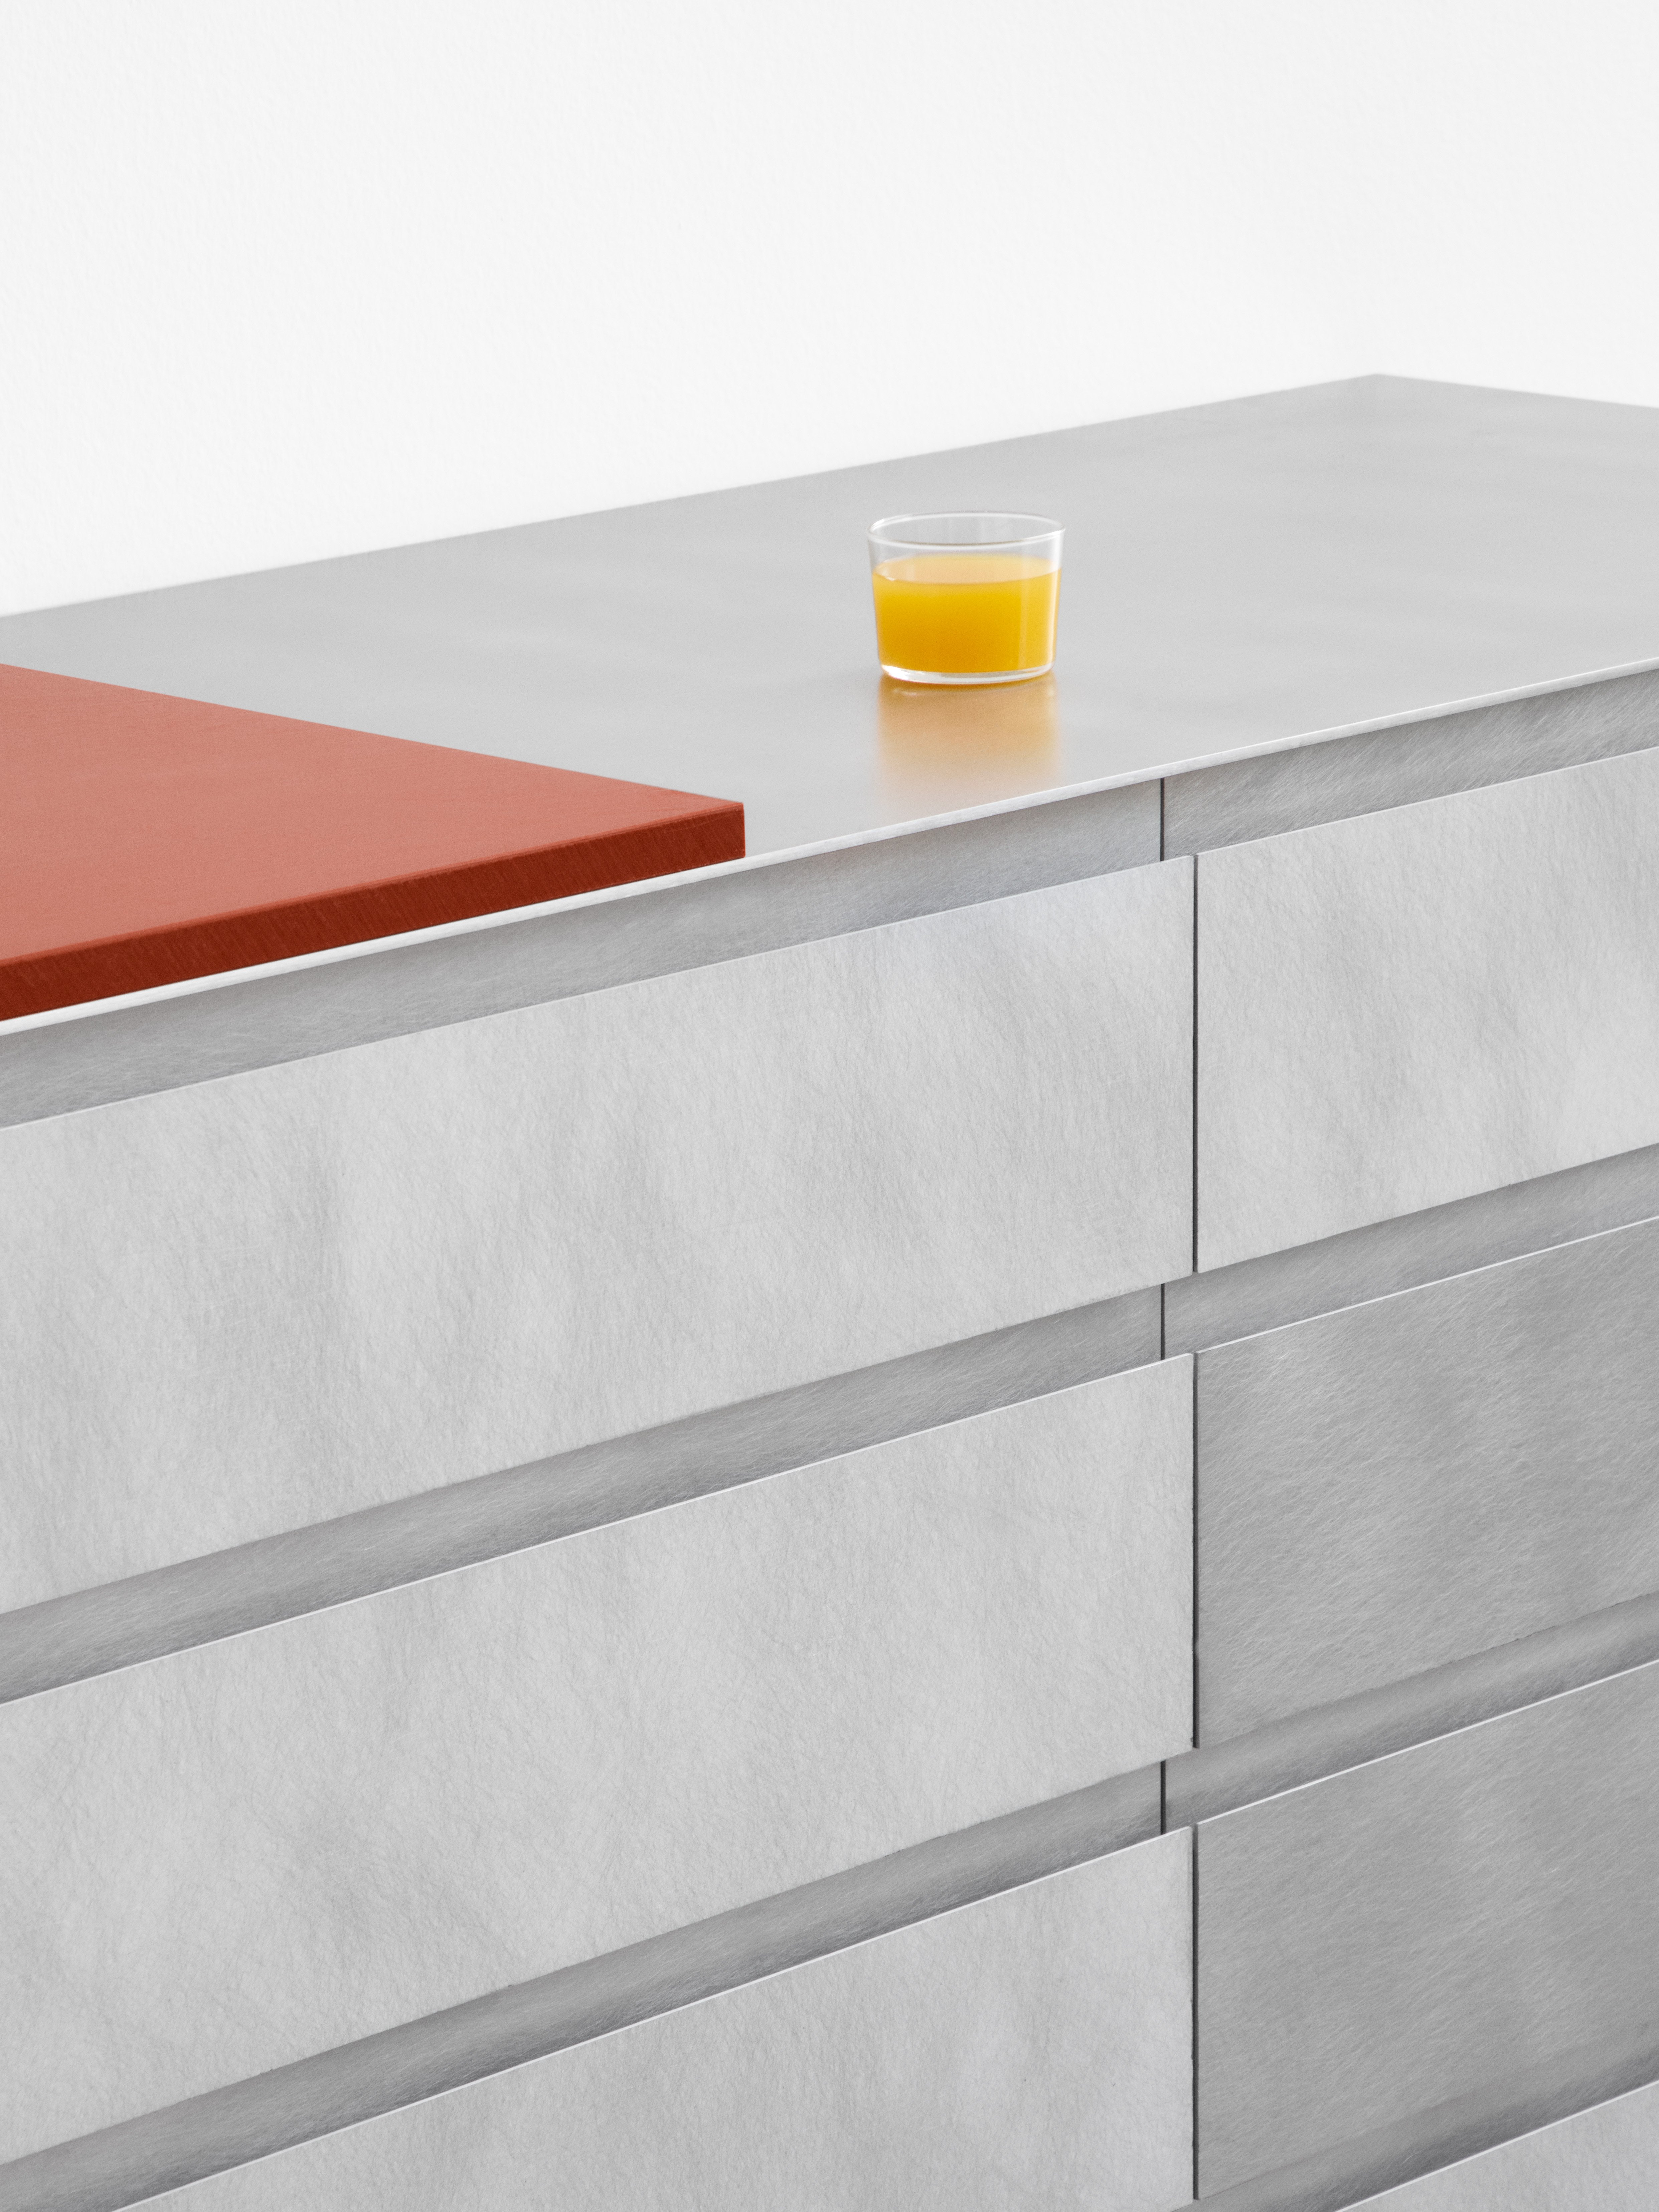 Reform metal kitchen cabinets by Studio David Thulstrup.